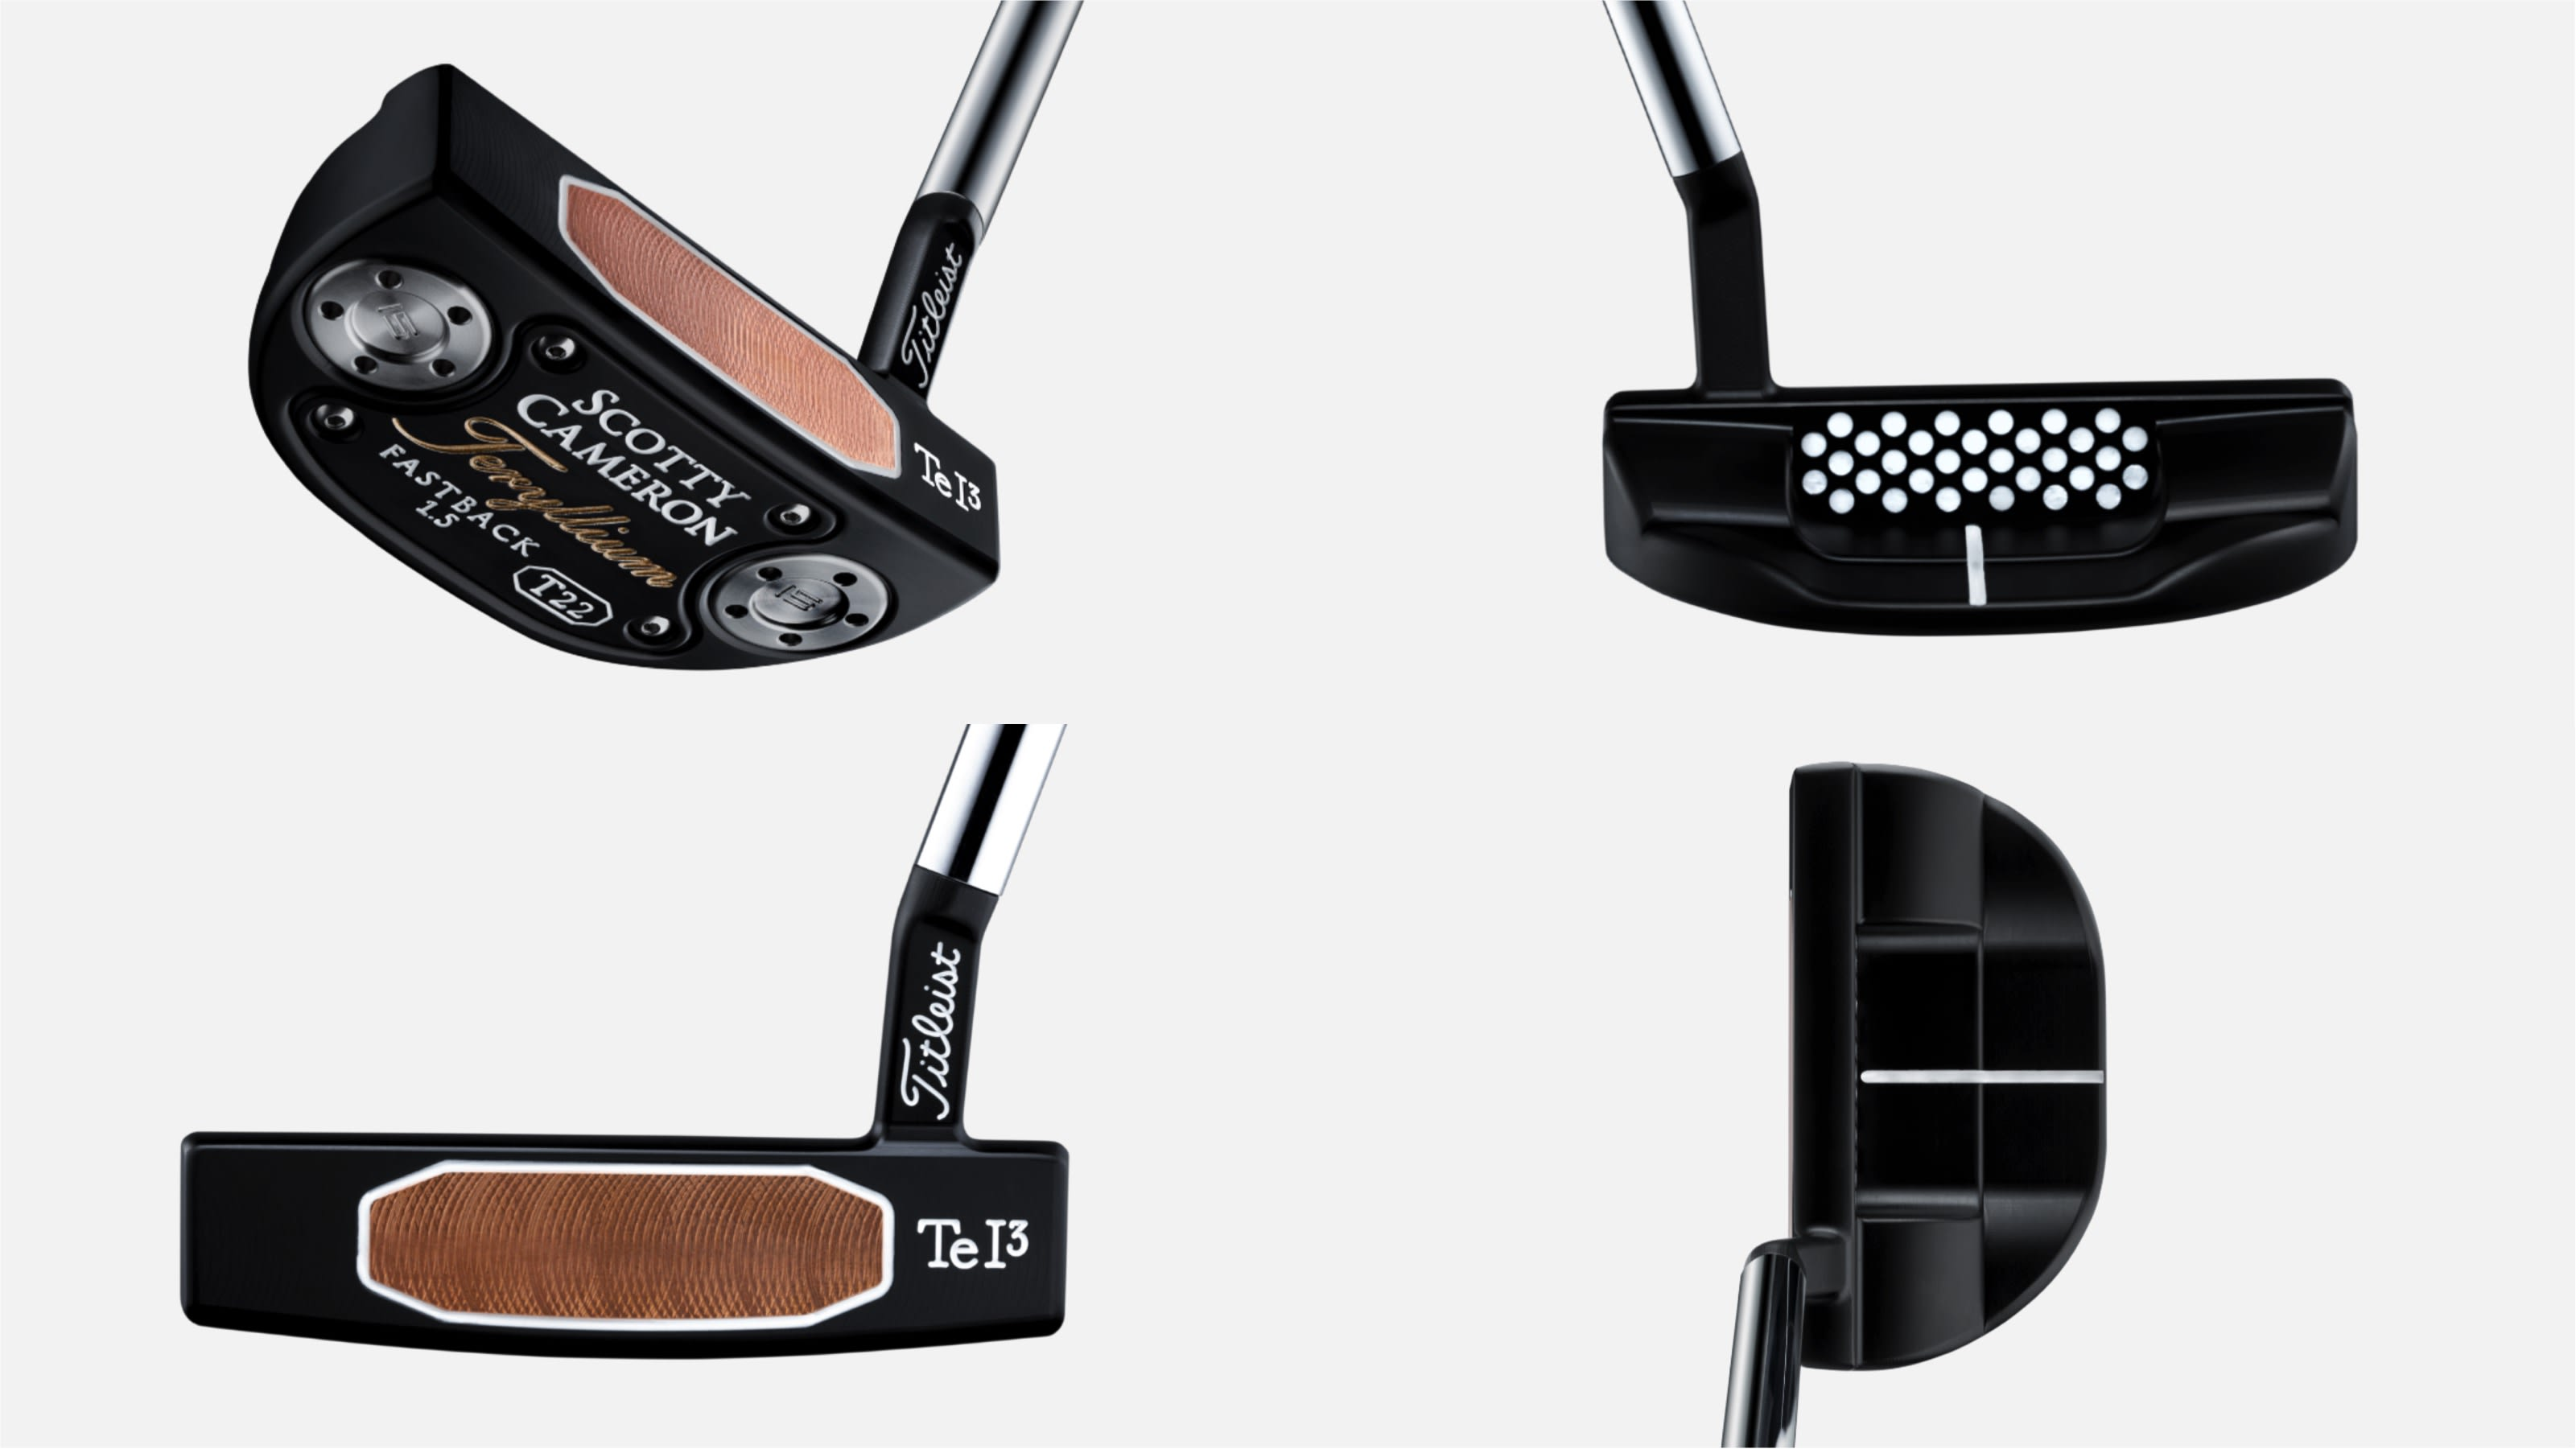 Scotty Cameron's new 2019 Teryllium T22 putters